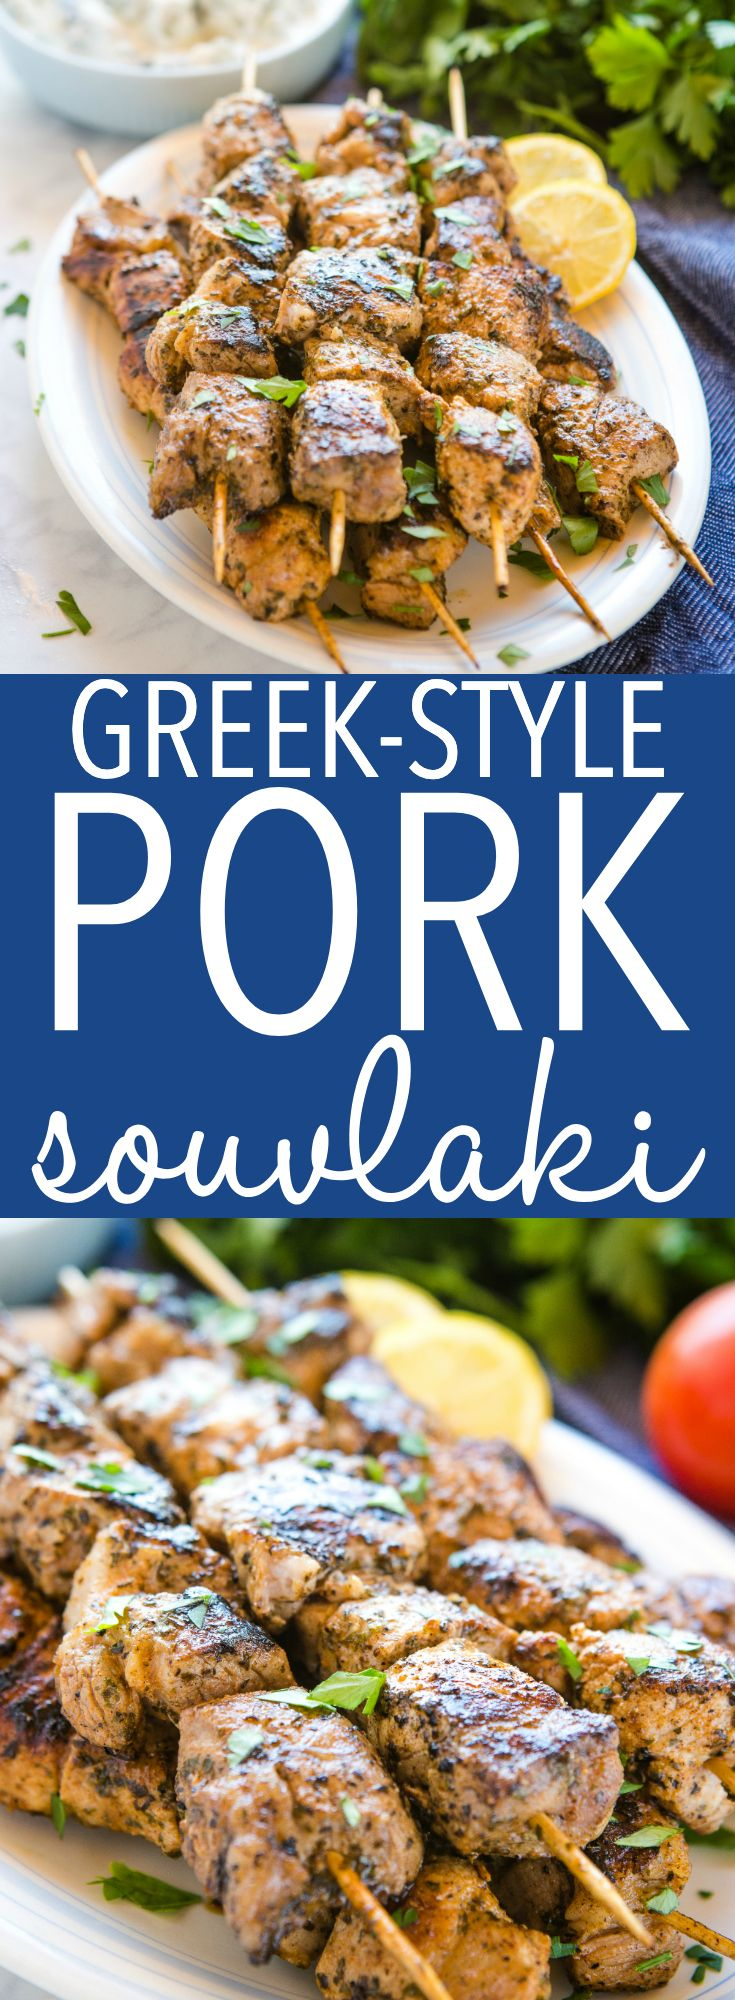 Photo of Easy Greek-Style Pork Souvlaki Skewers